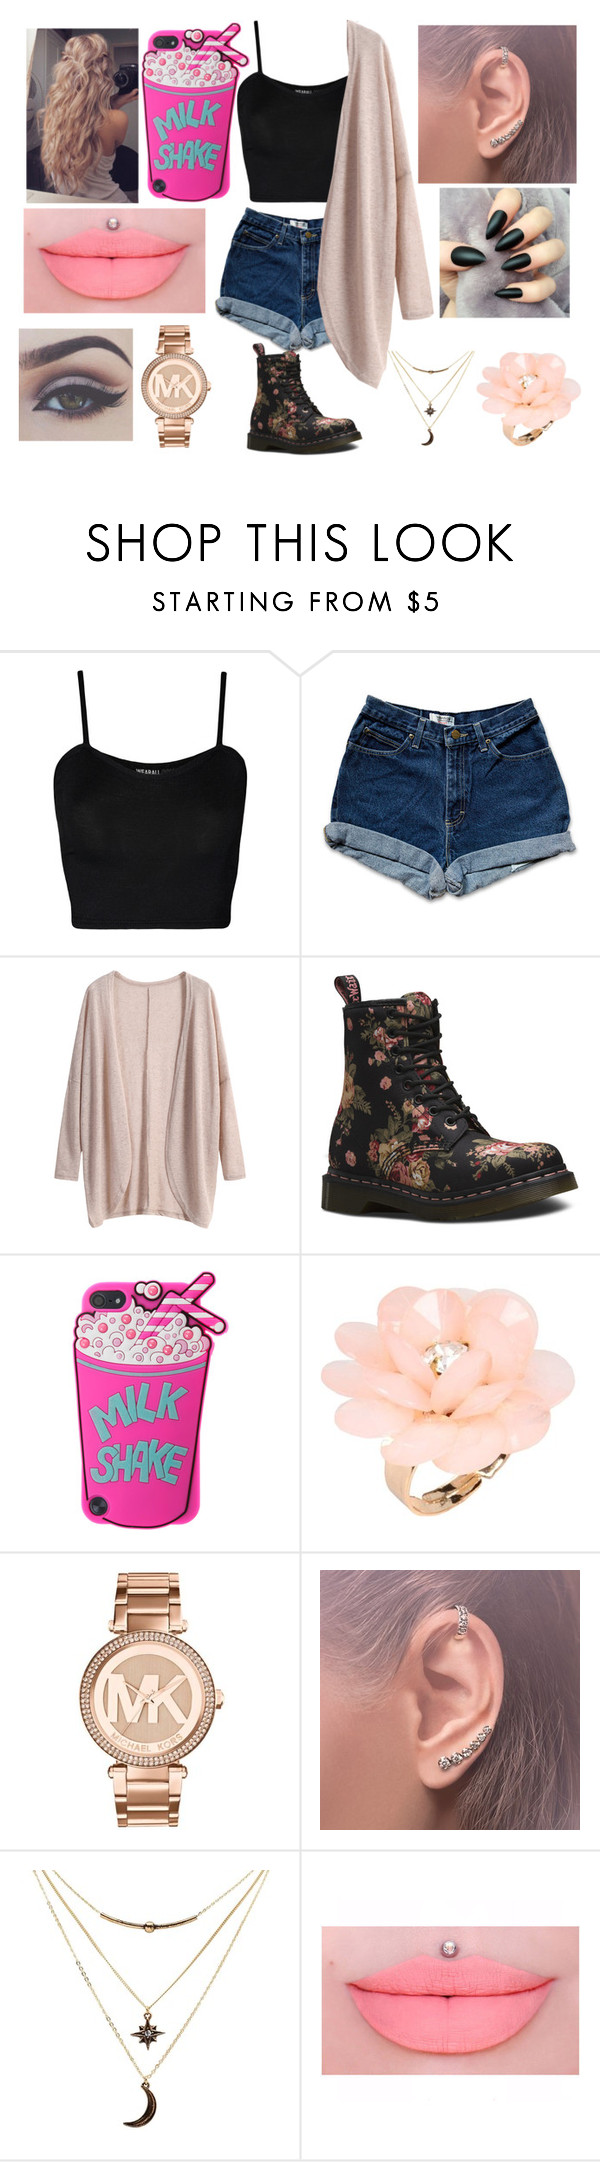 Magcon meet and greet by magcon and o2l bish liked on polyvore magcon meet and greet by magcon and o2l bish liked kristyandbryce Gallery